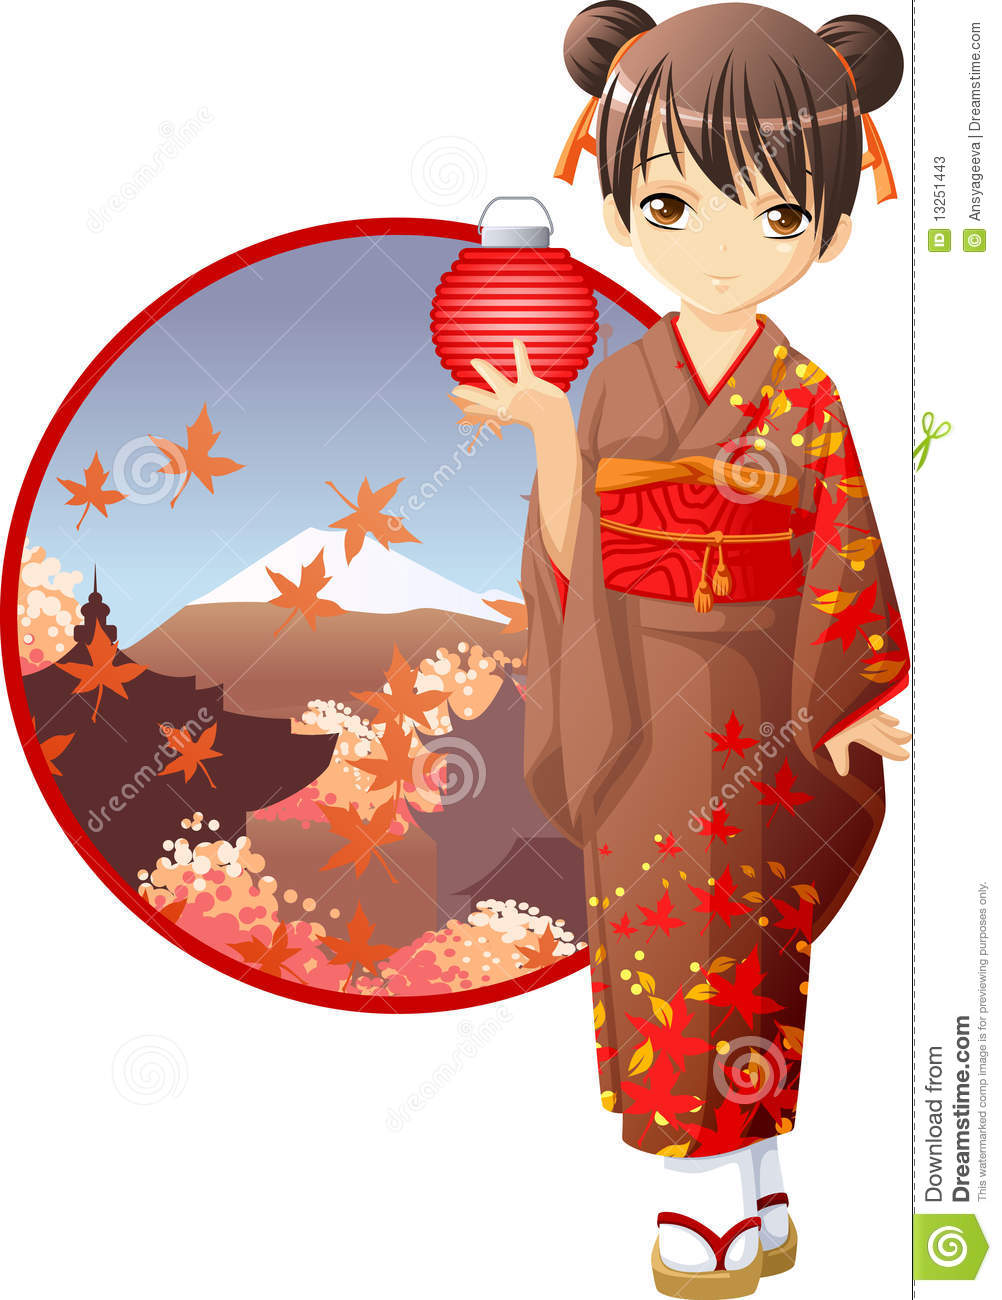 Cute And Kawaii Autumn Kimono Girl At Anime Style